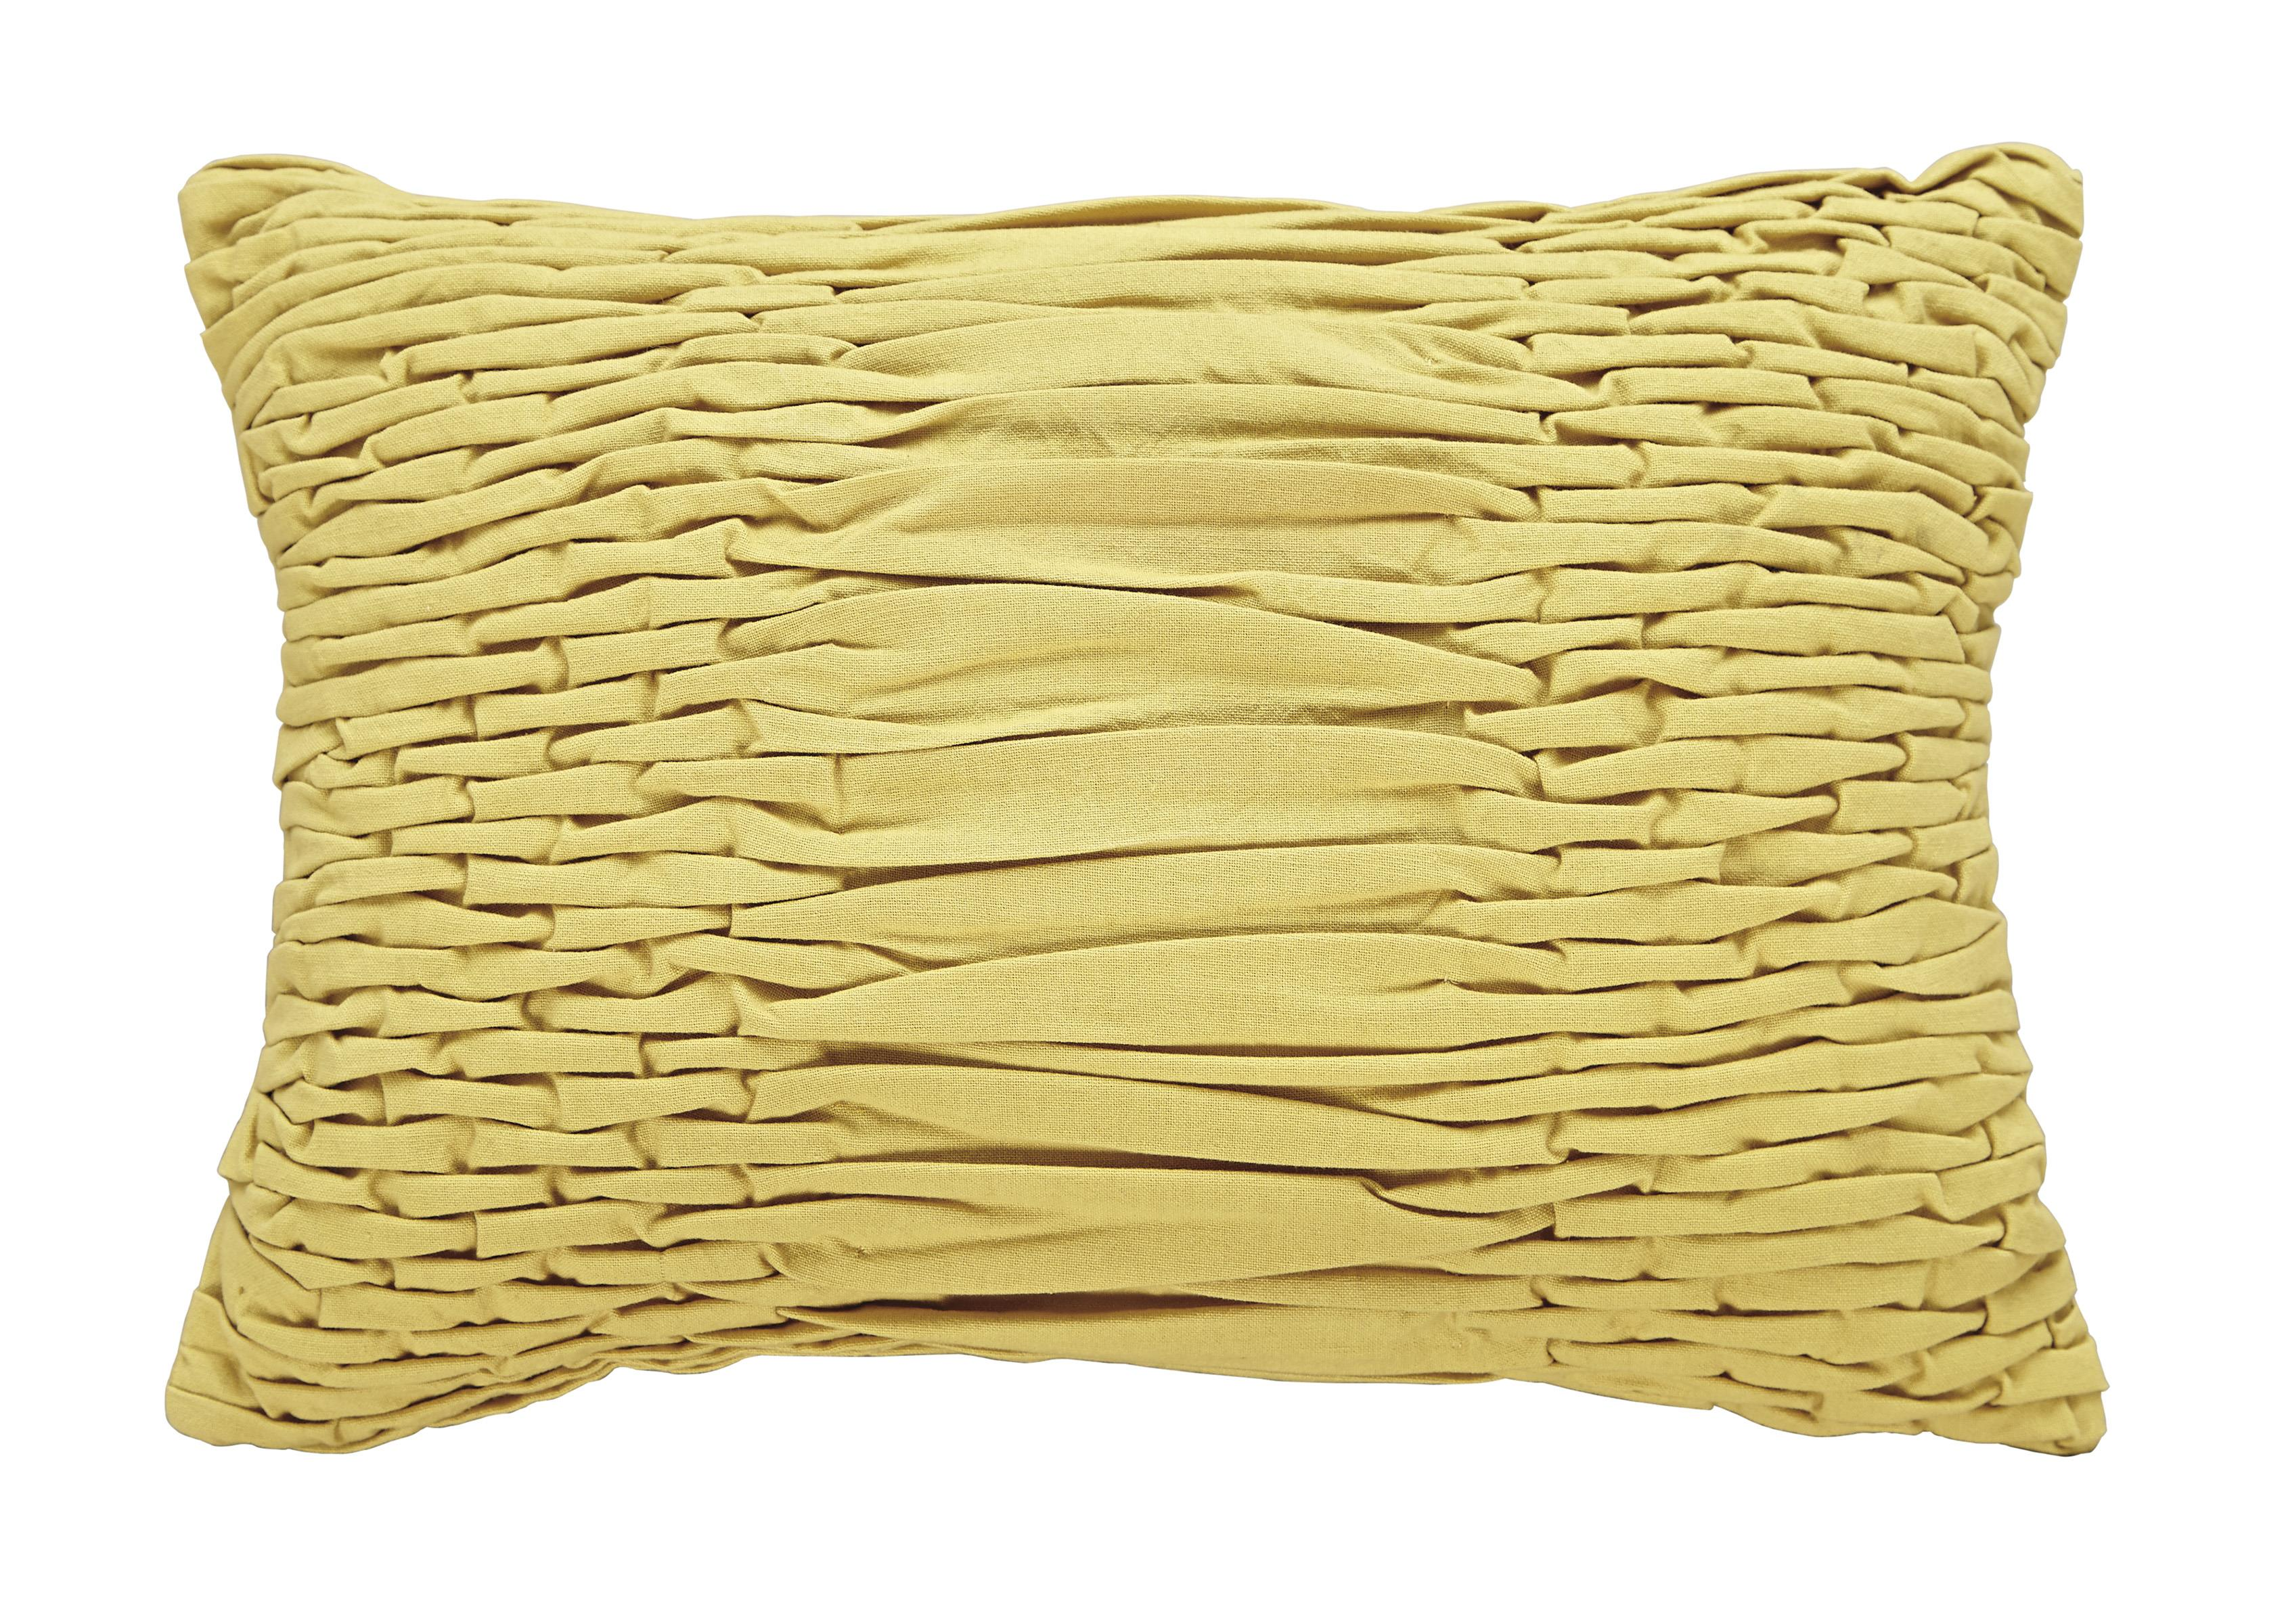 Signature Design by Ashley Pillows Nellie - Yellow Pillow - Item Number: A1000502P